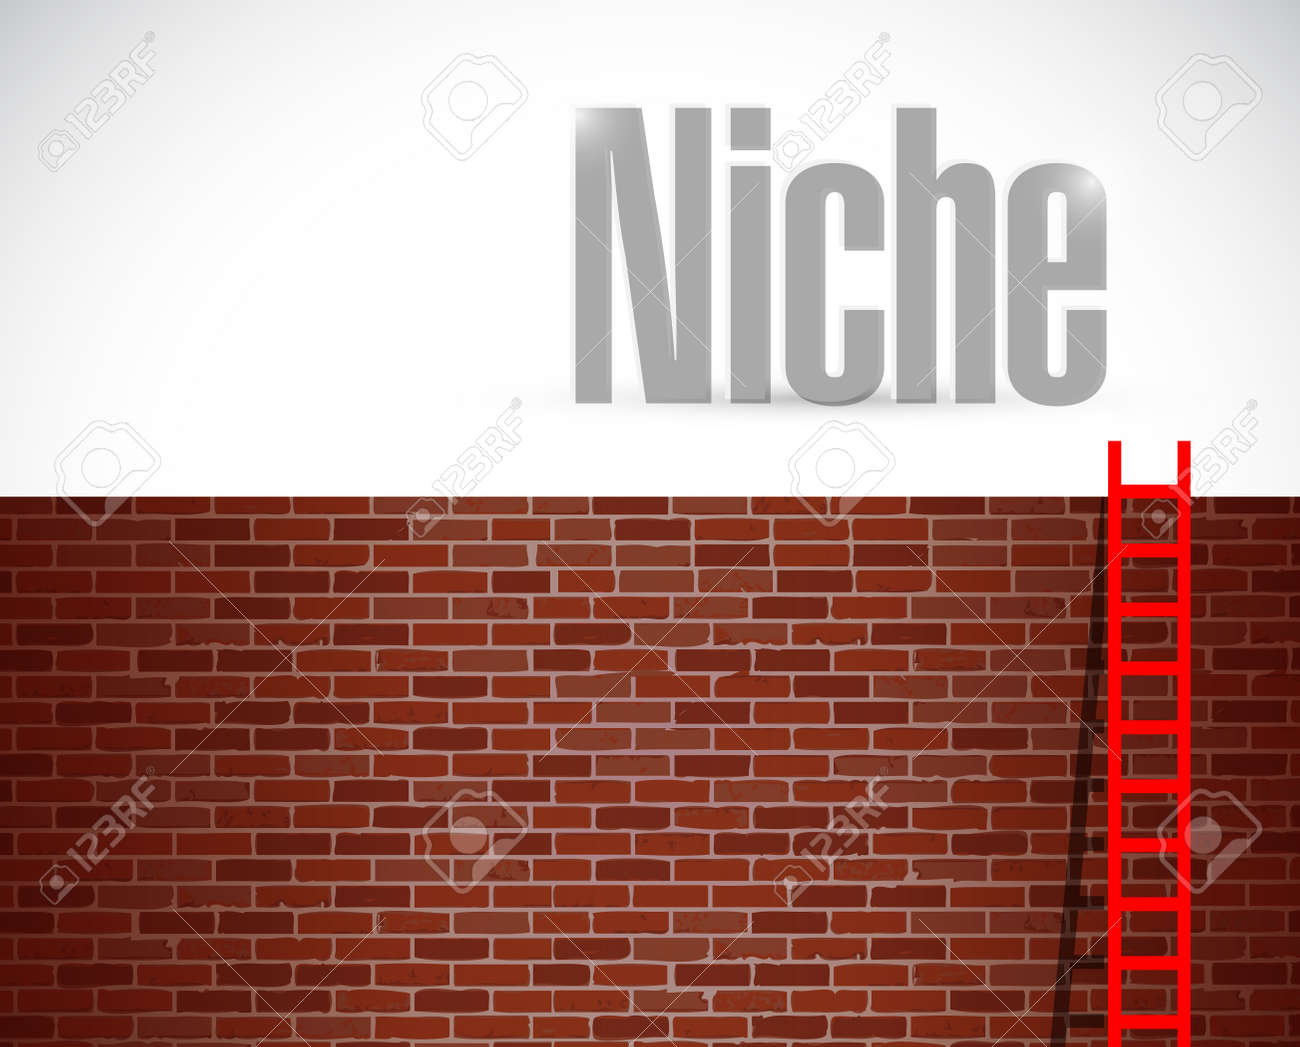 Clime to the niche ladder concept illustration design over